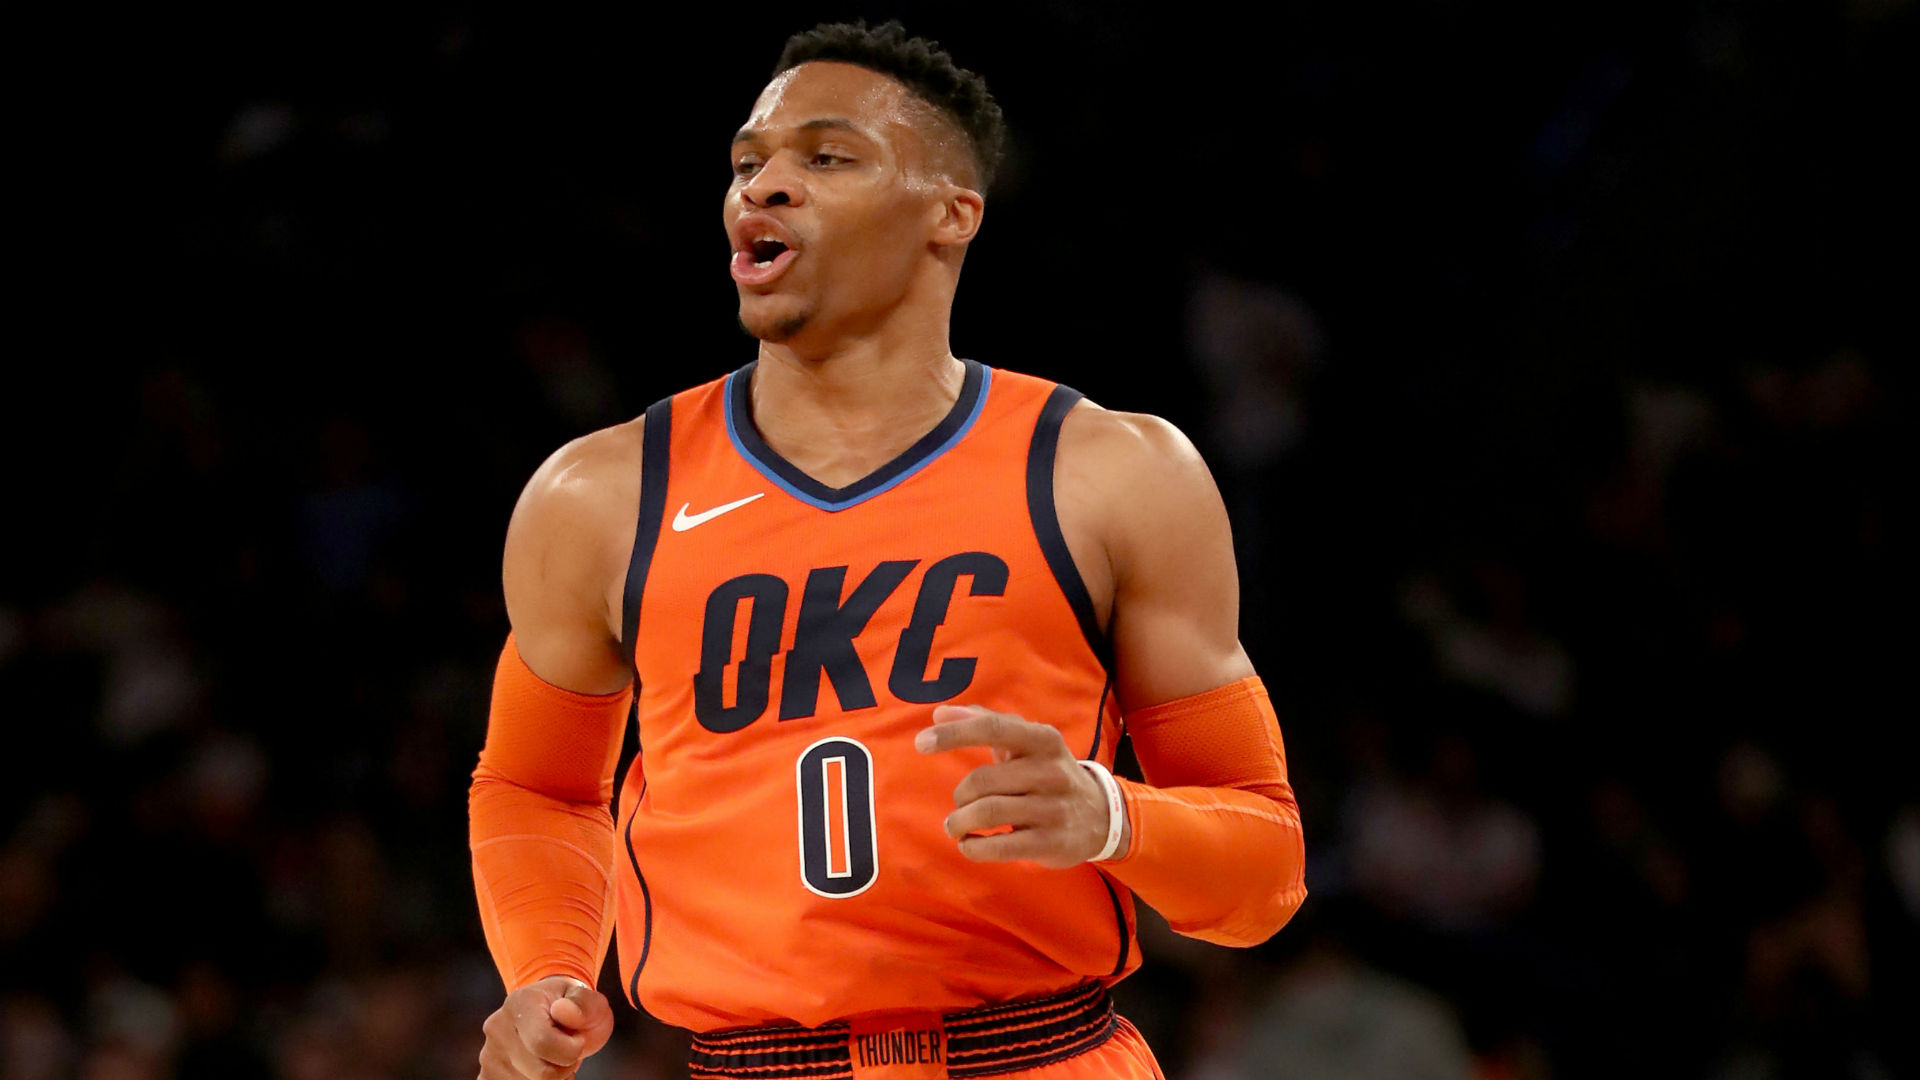 Russell Westbrook said he never dreamed of playing in the NBA, let alone making history.